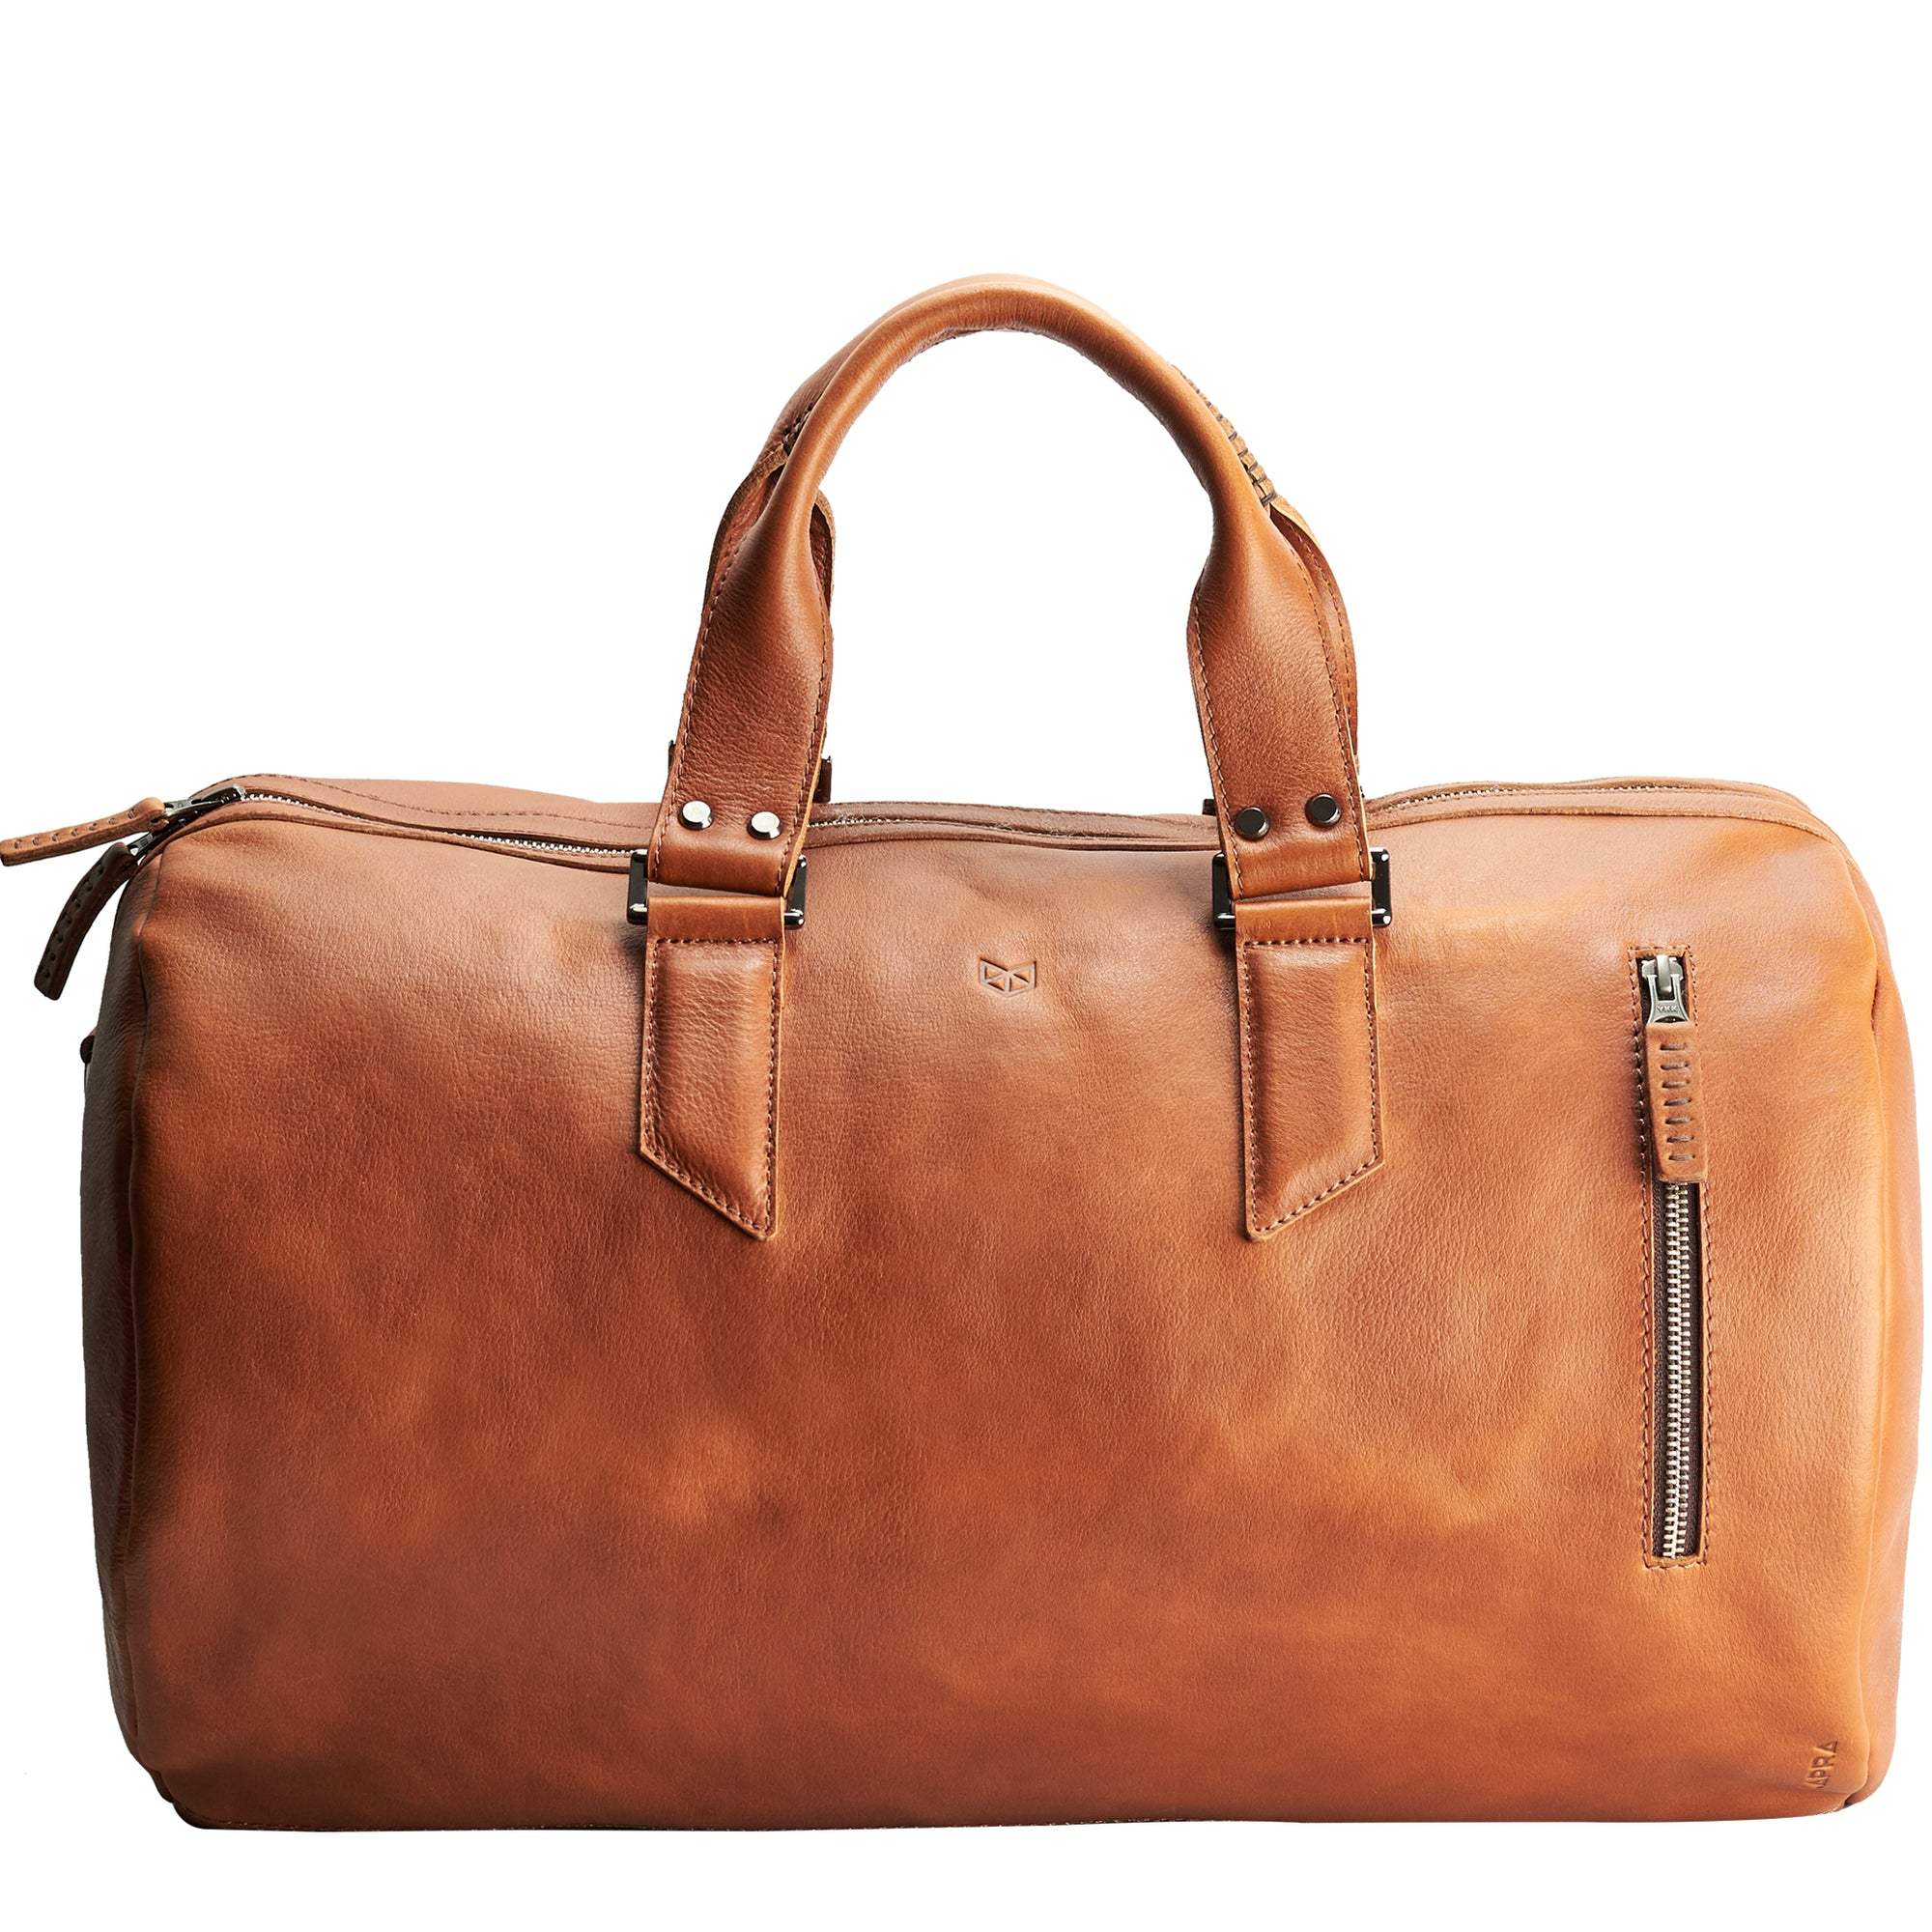 961518c60 Handmade Substantial Duffle Bag by Capra Leather